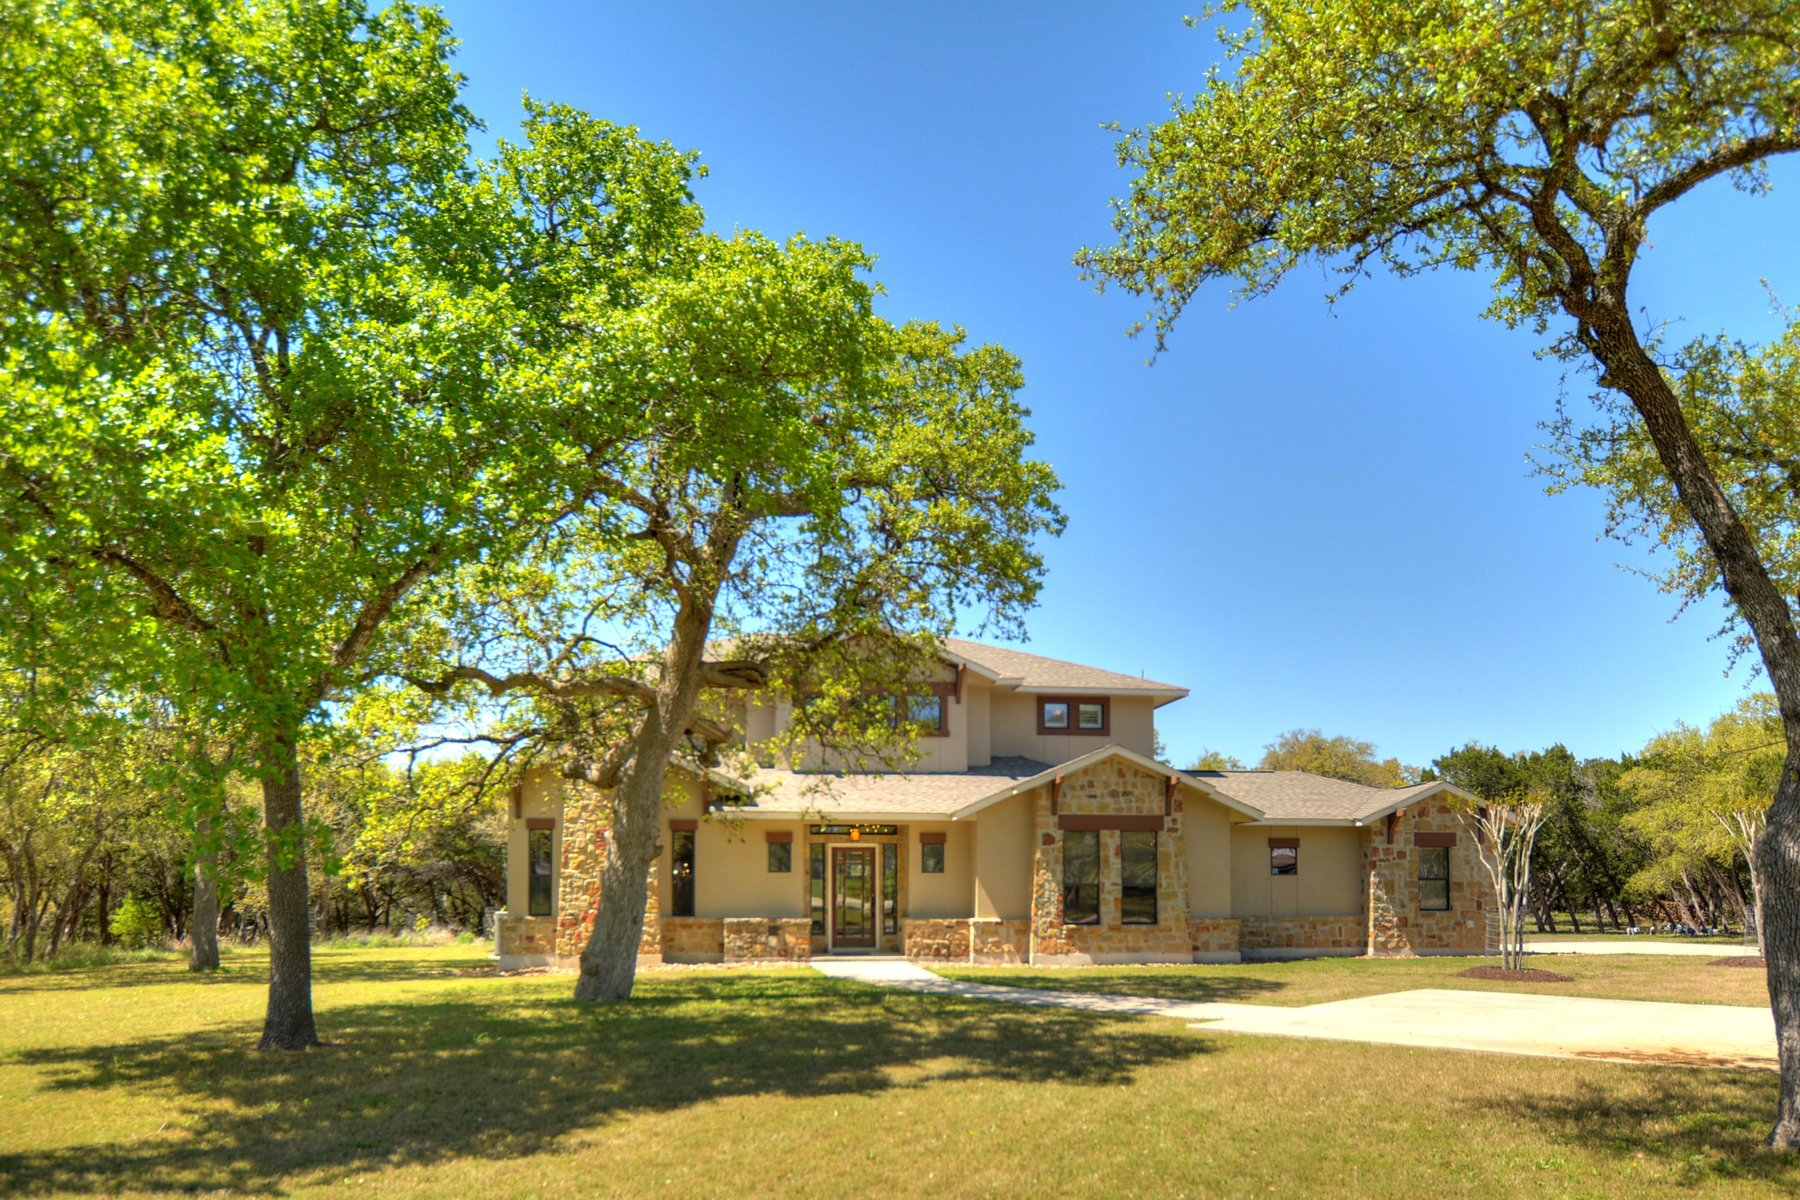 Single Family Home for Sale at Gorgeous Estate in Ammann Ranch Estates 23 Olivia Cir Boerne, Texas 78006 United States